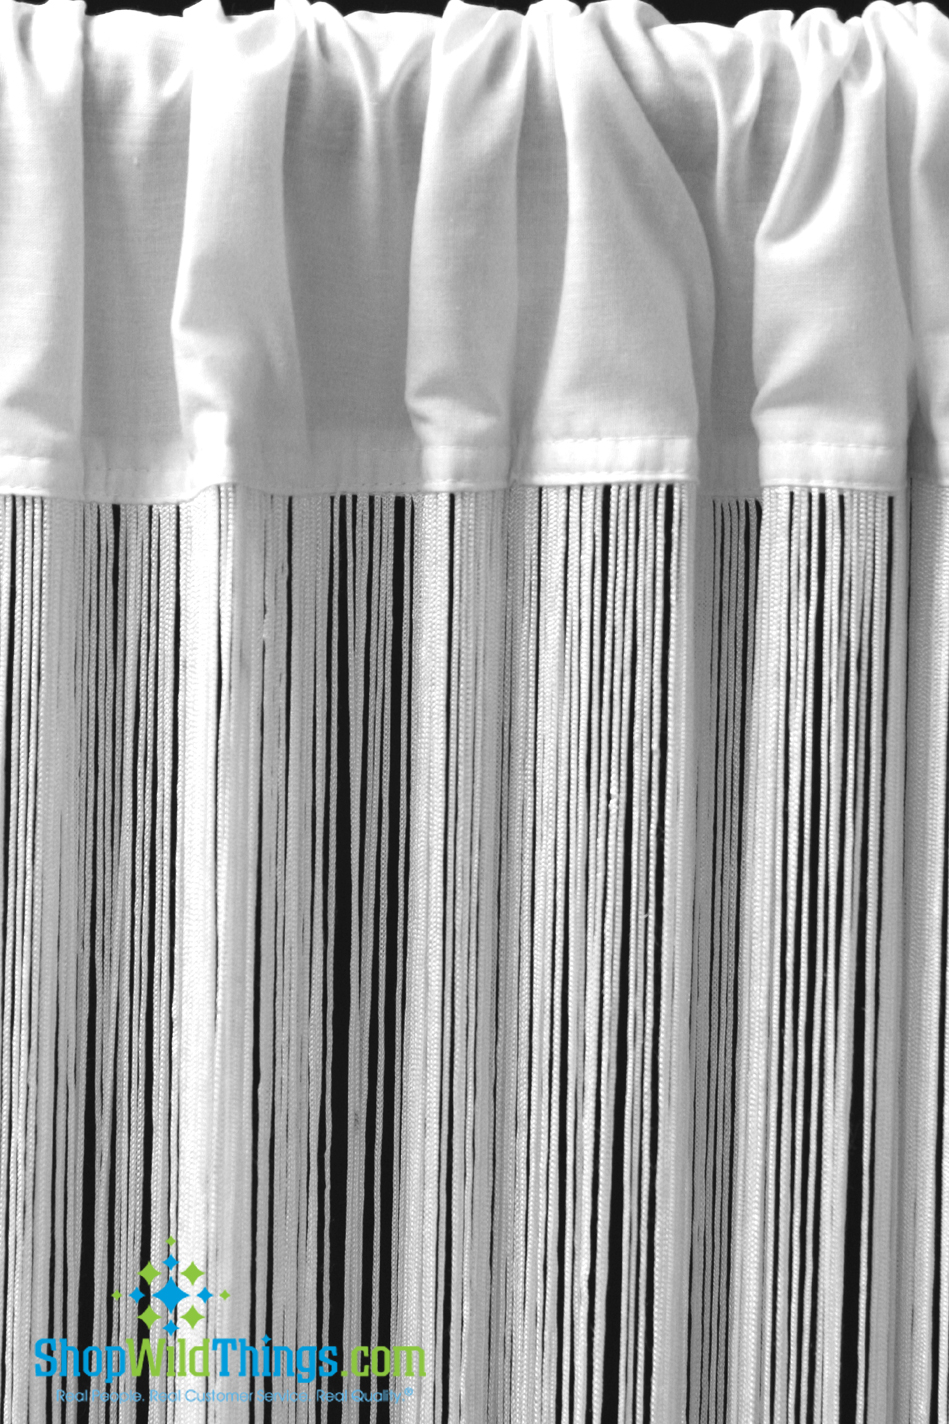 extra long fringe curtains string curtains in stock and ready to ship